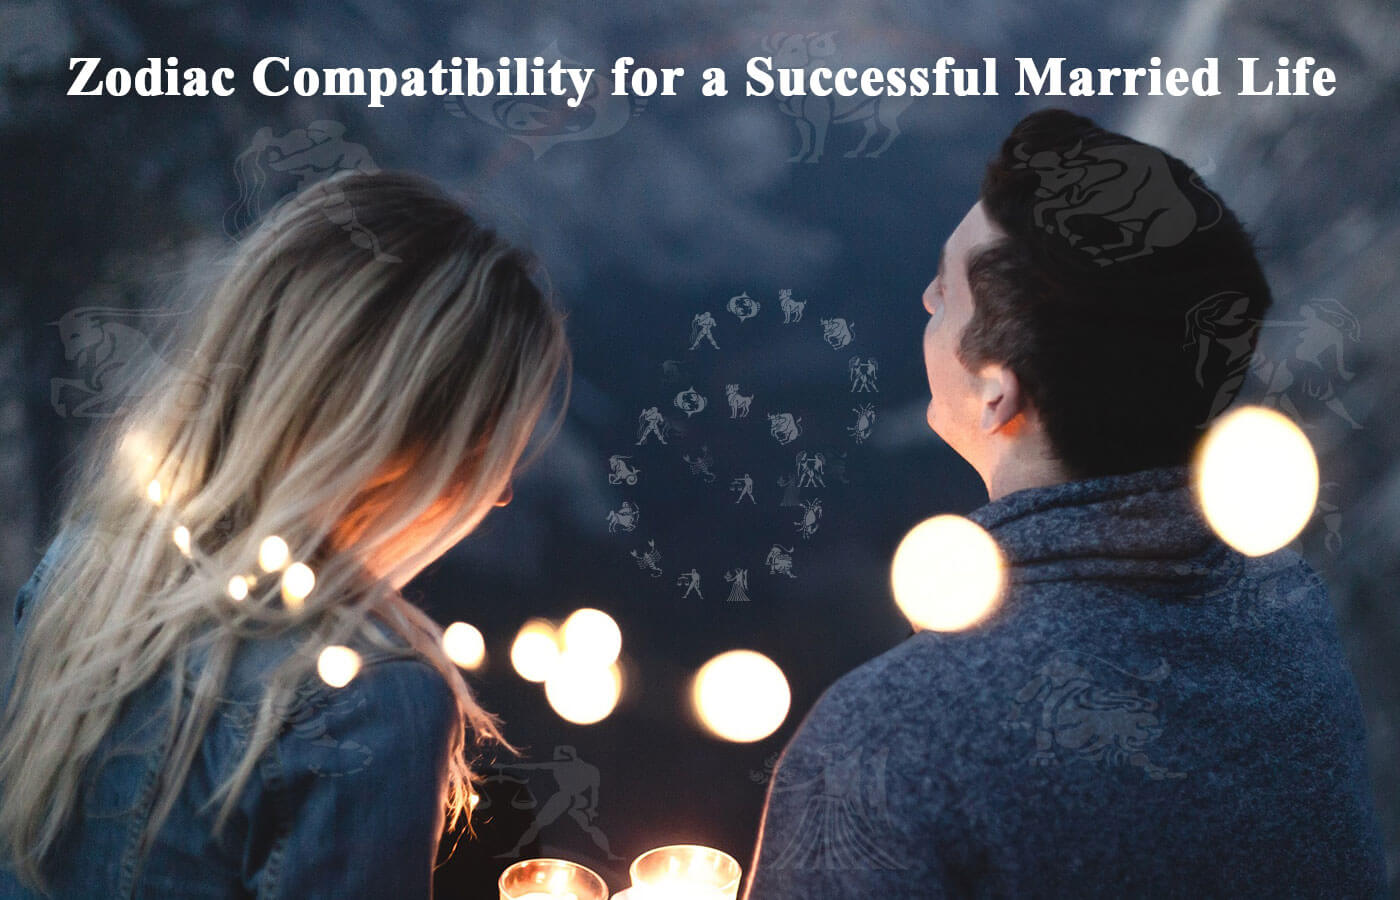 Zodiac Compatibility for a Successful Married Life